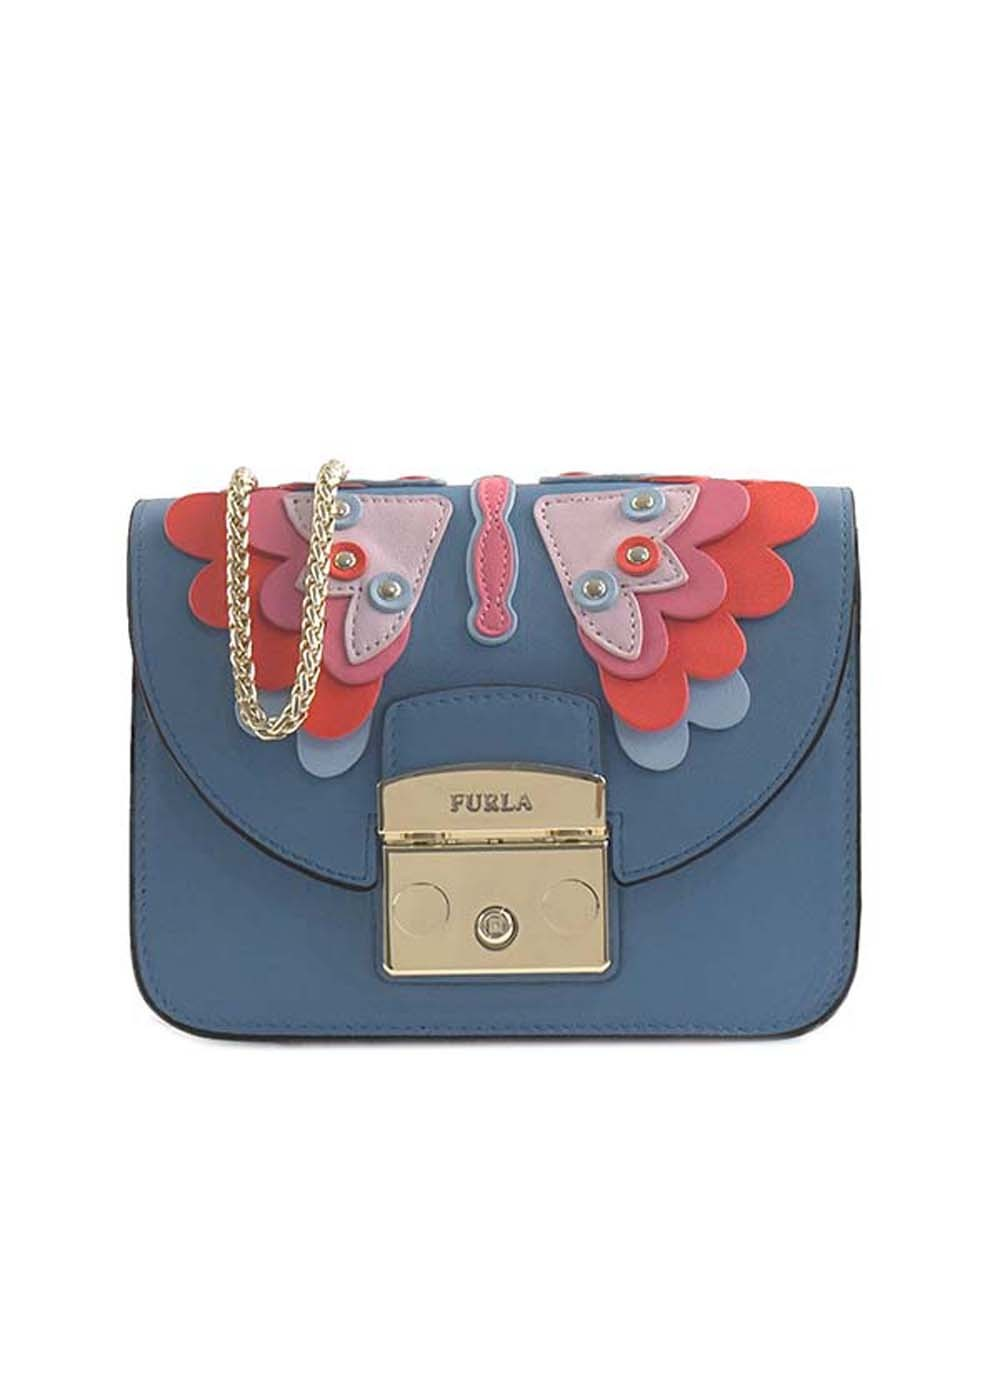 【最大50%OFF】【'18年秋冬新作】METROPOLIS PAPILLON MINI CROSS|GENZIANA e|ショルダーバッグ|FURLA_(C)